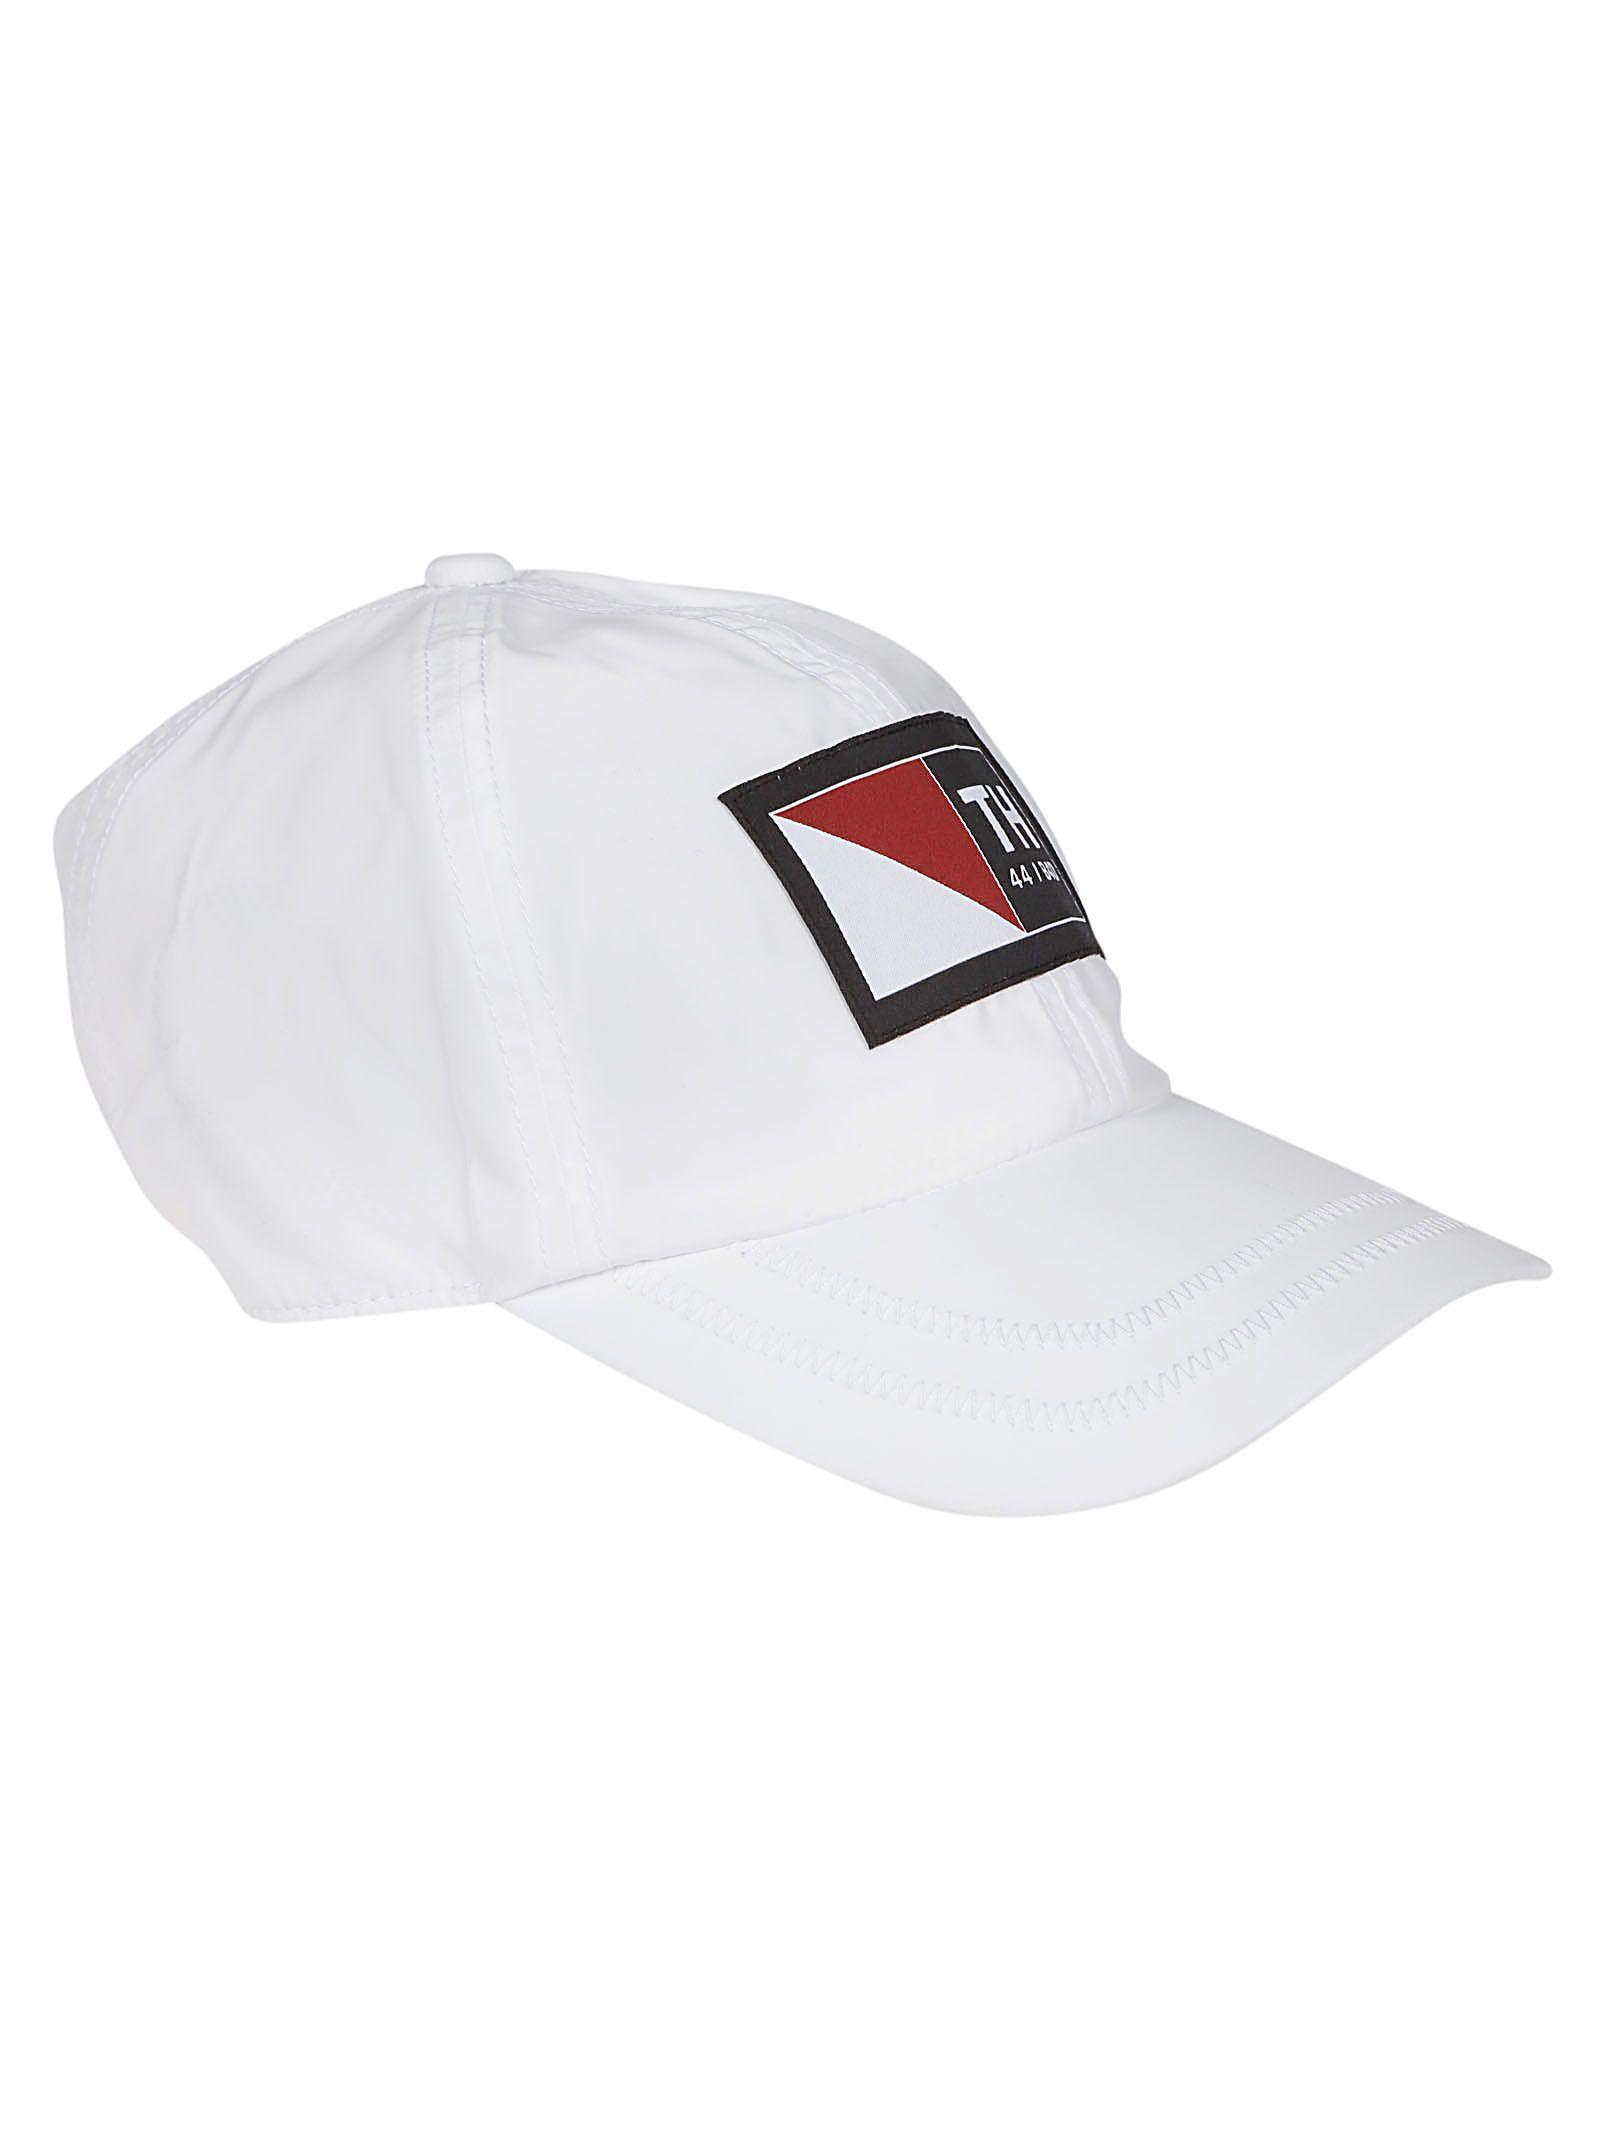 1e252fae945 Lyst - Tommy Hilfiger White Polyamide Hat in White for Men